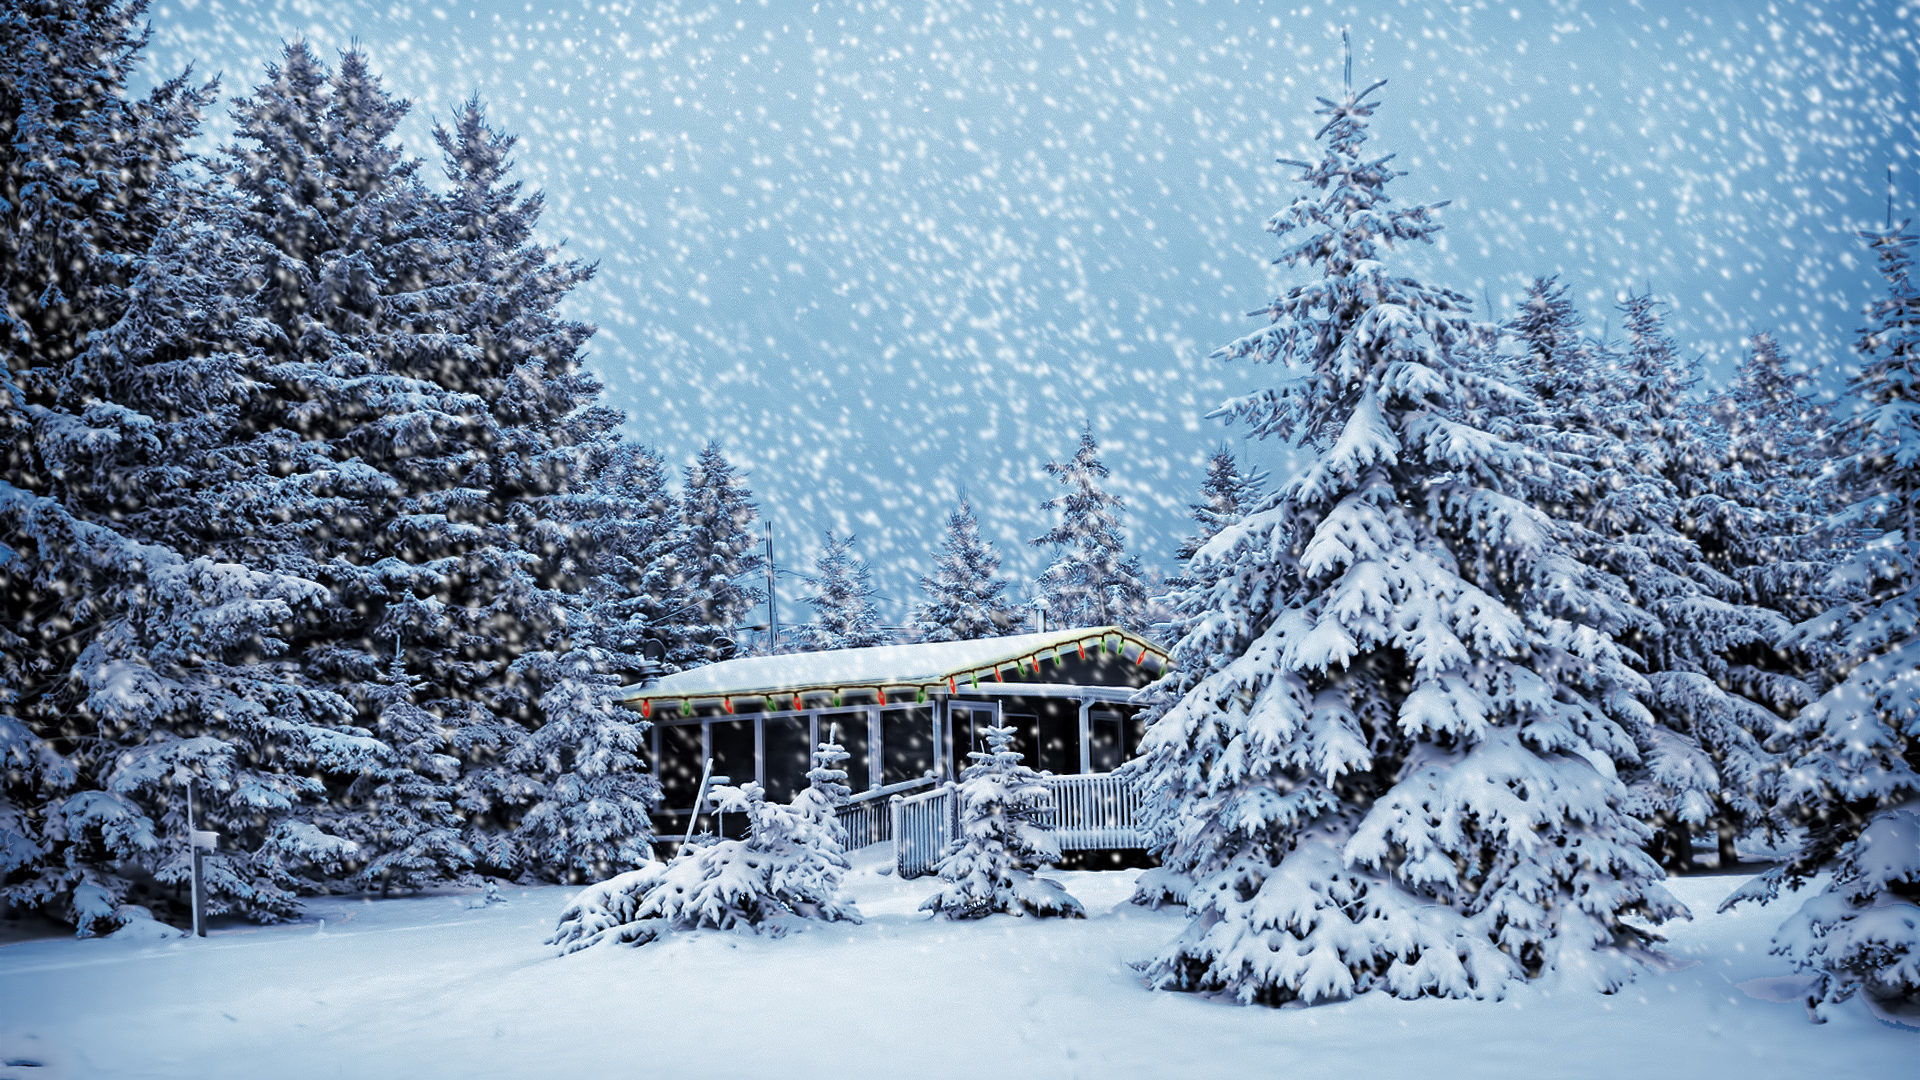 snowy christmas scene in Canada | wallpapers55.com – Best Wallpapers .